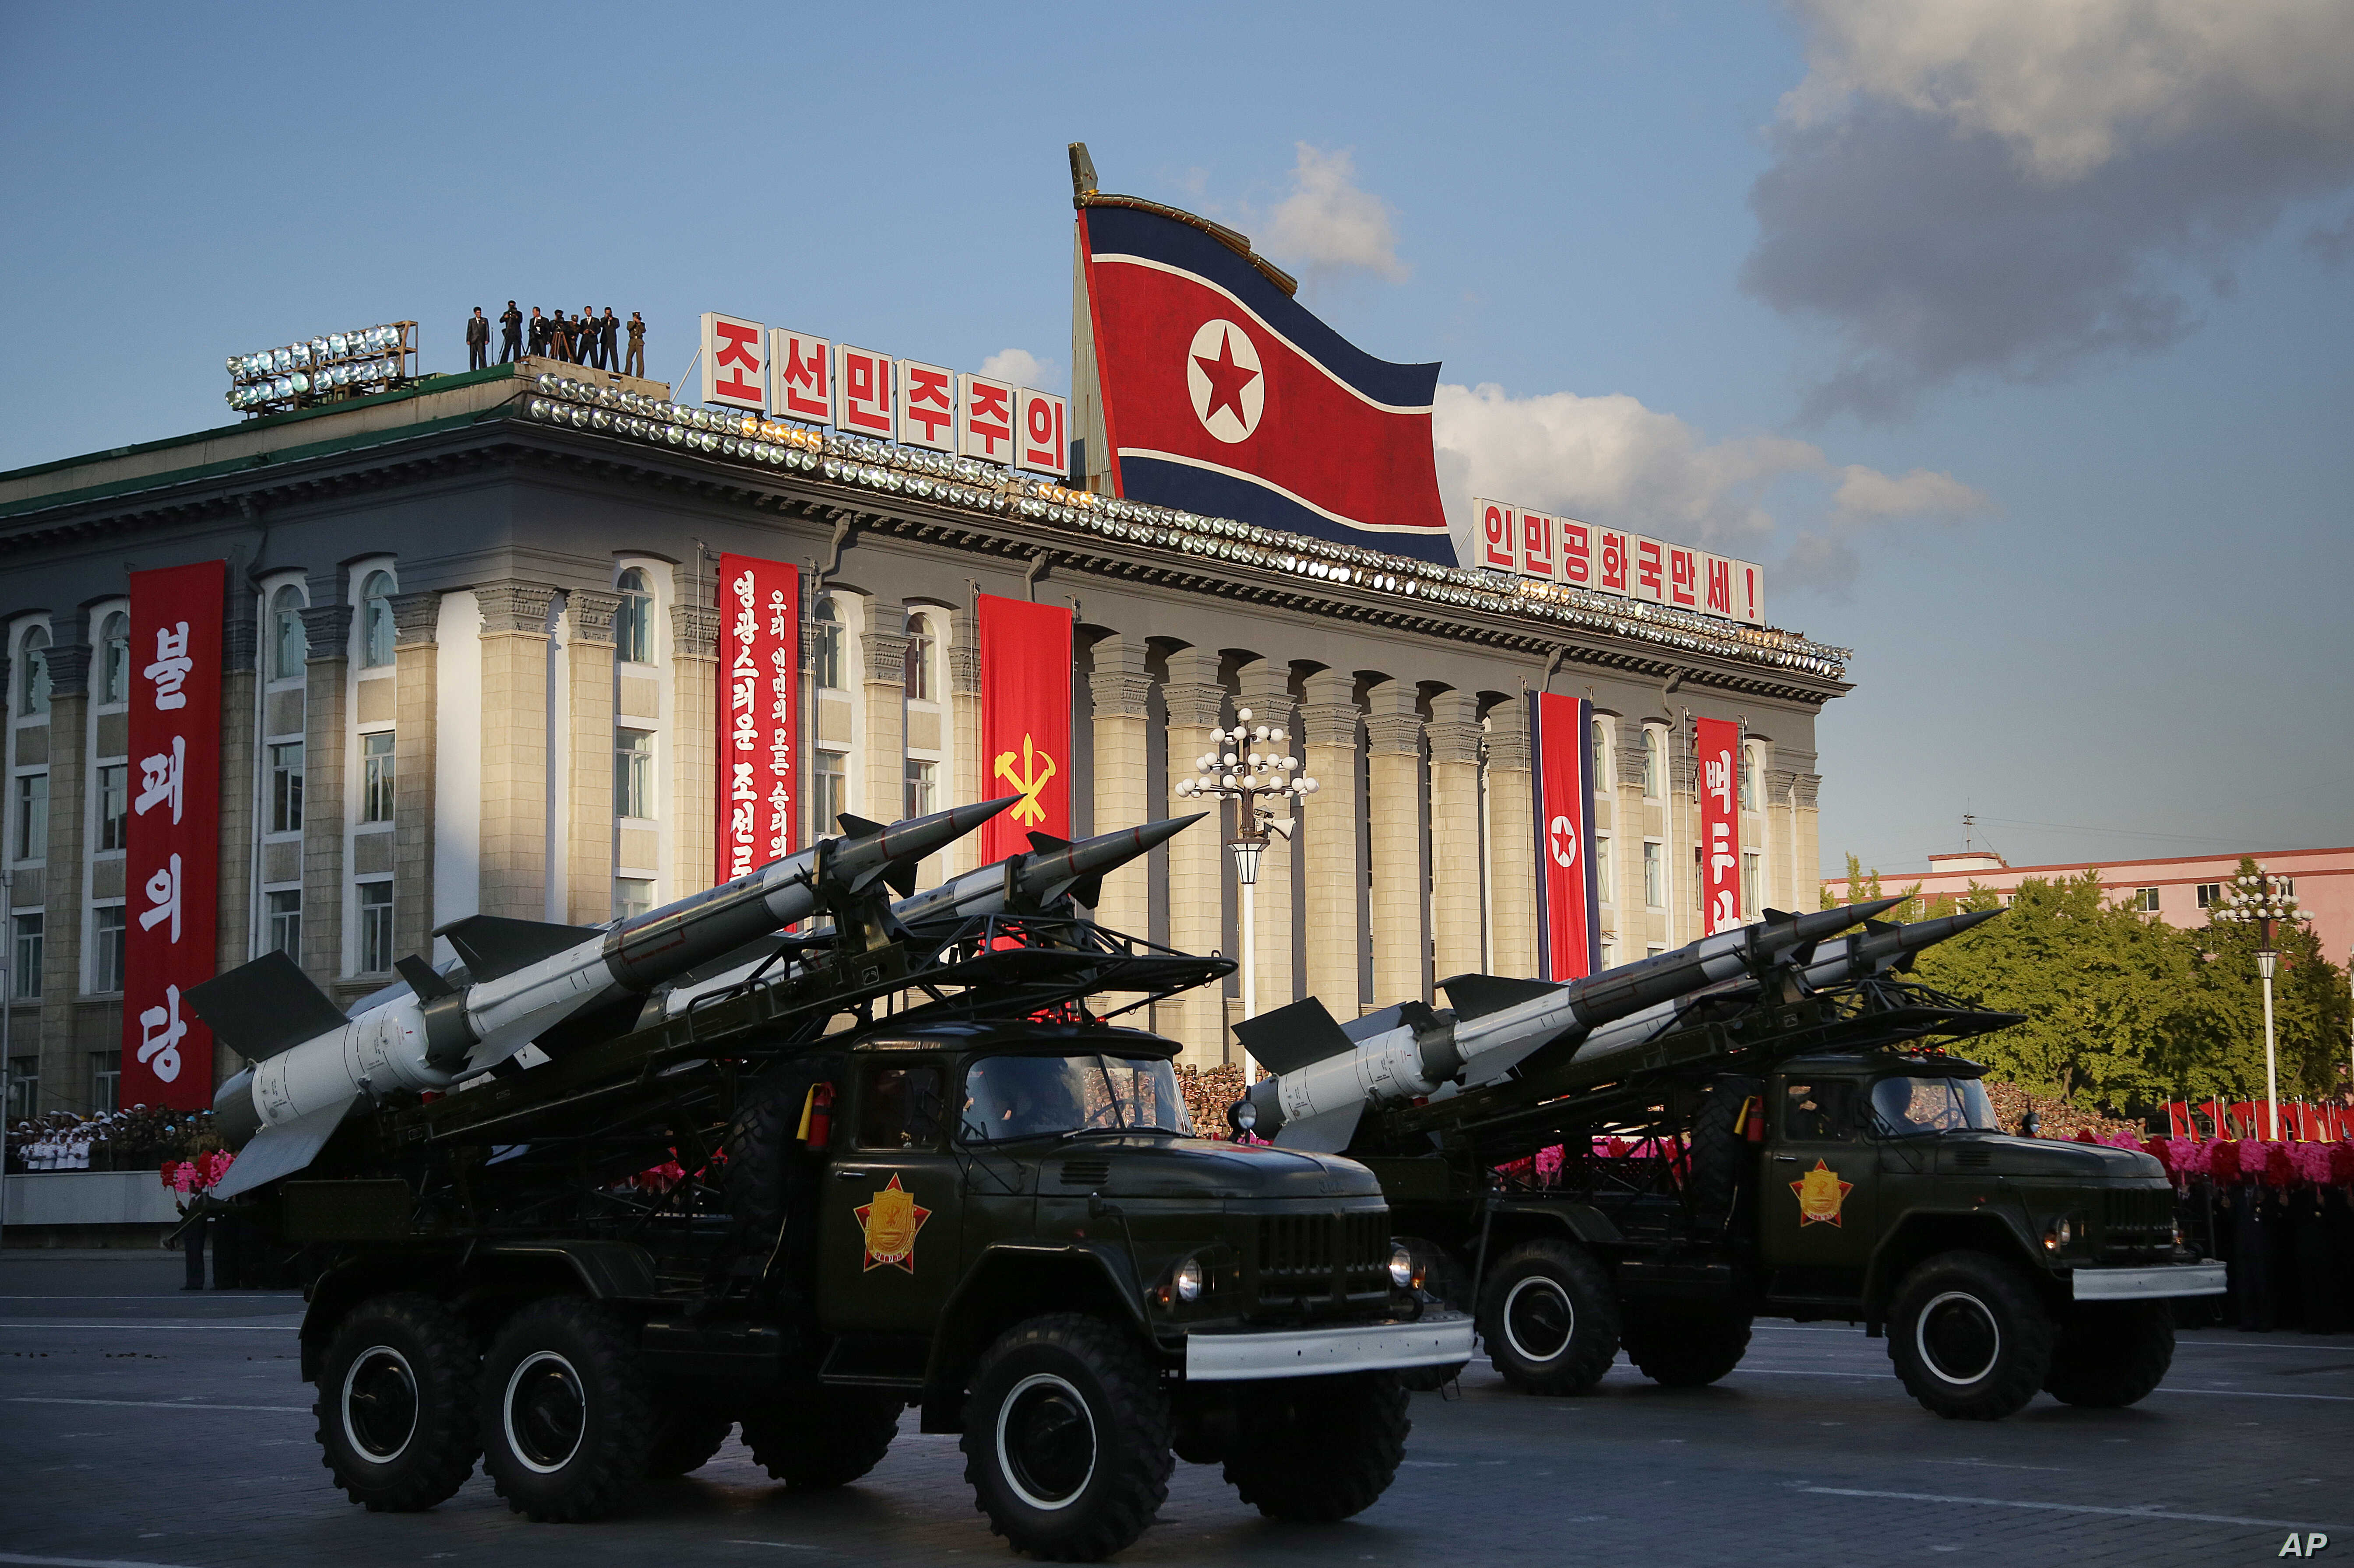 North Korean soldiers parade through Kim Il Sung Square with their missiles and rockets during a mass military parade, Oct. 10, 2015, in Pyongyang, North Korea.